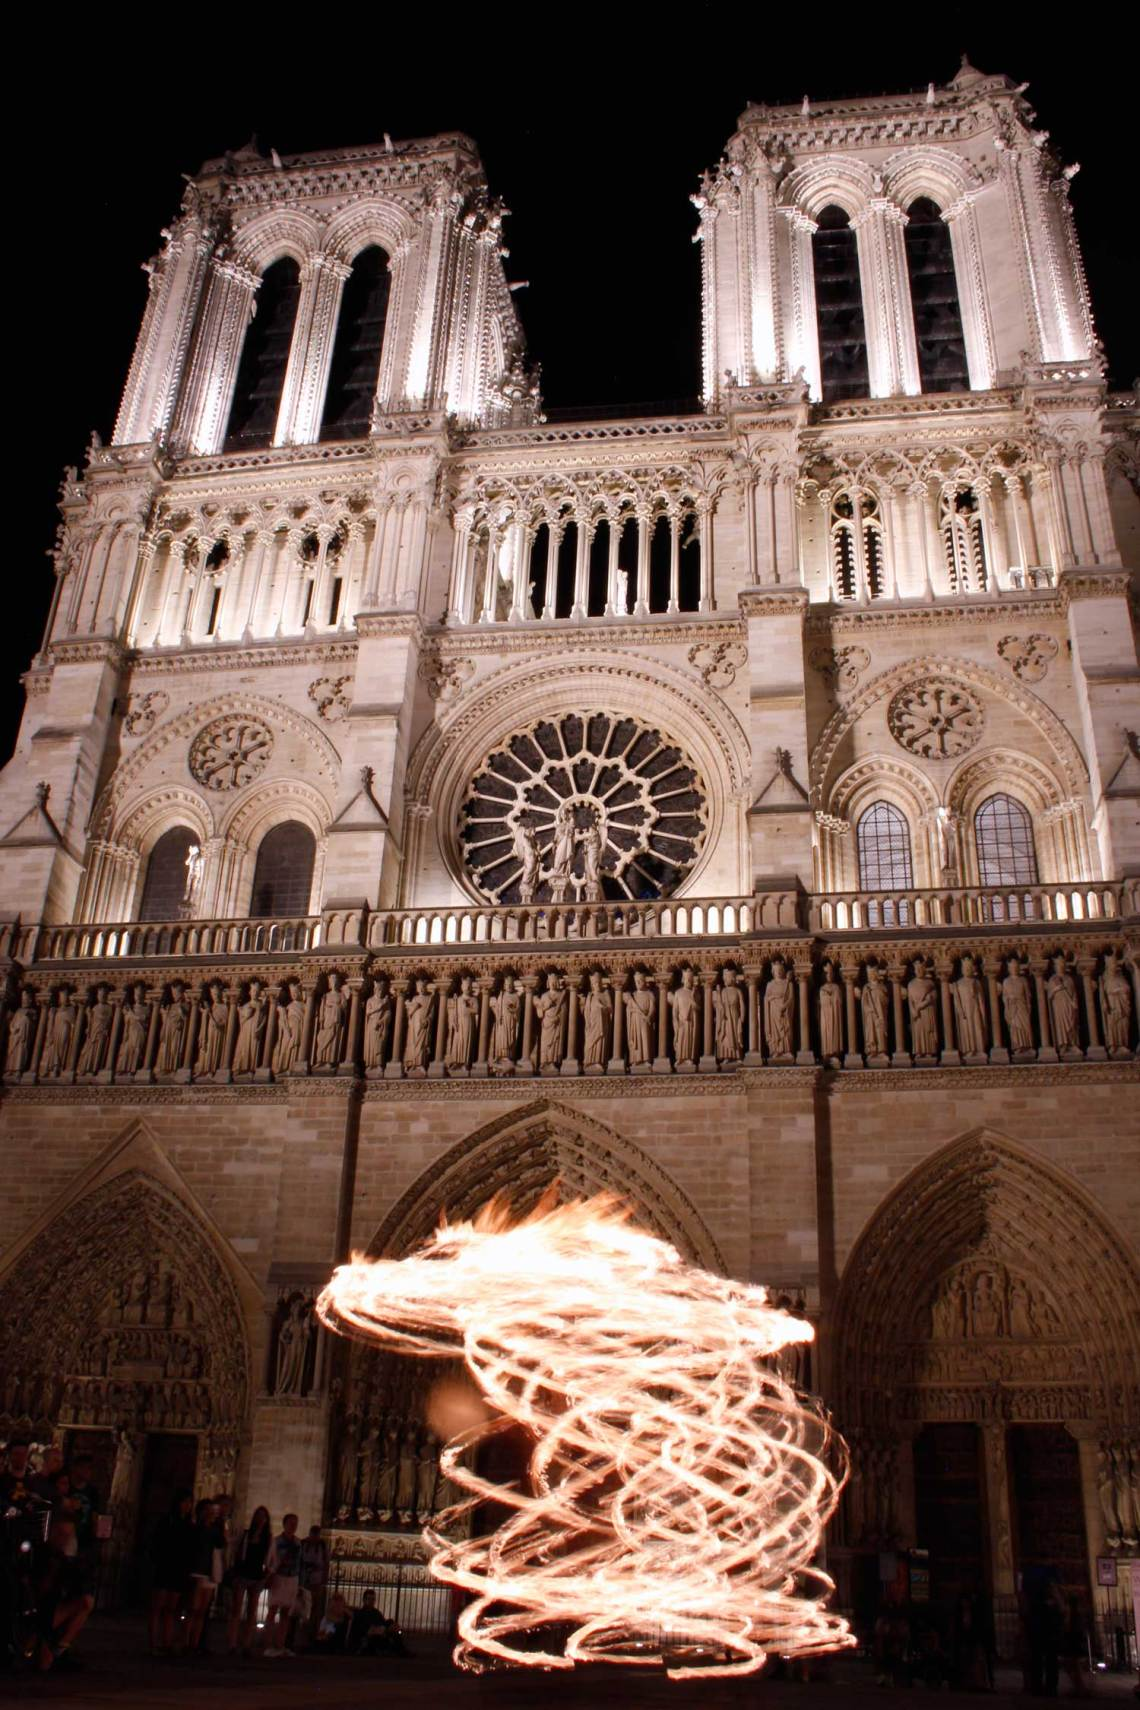 Notre-Dame, Fire Dancer, Paris, France, Midnight in Paris